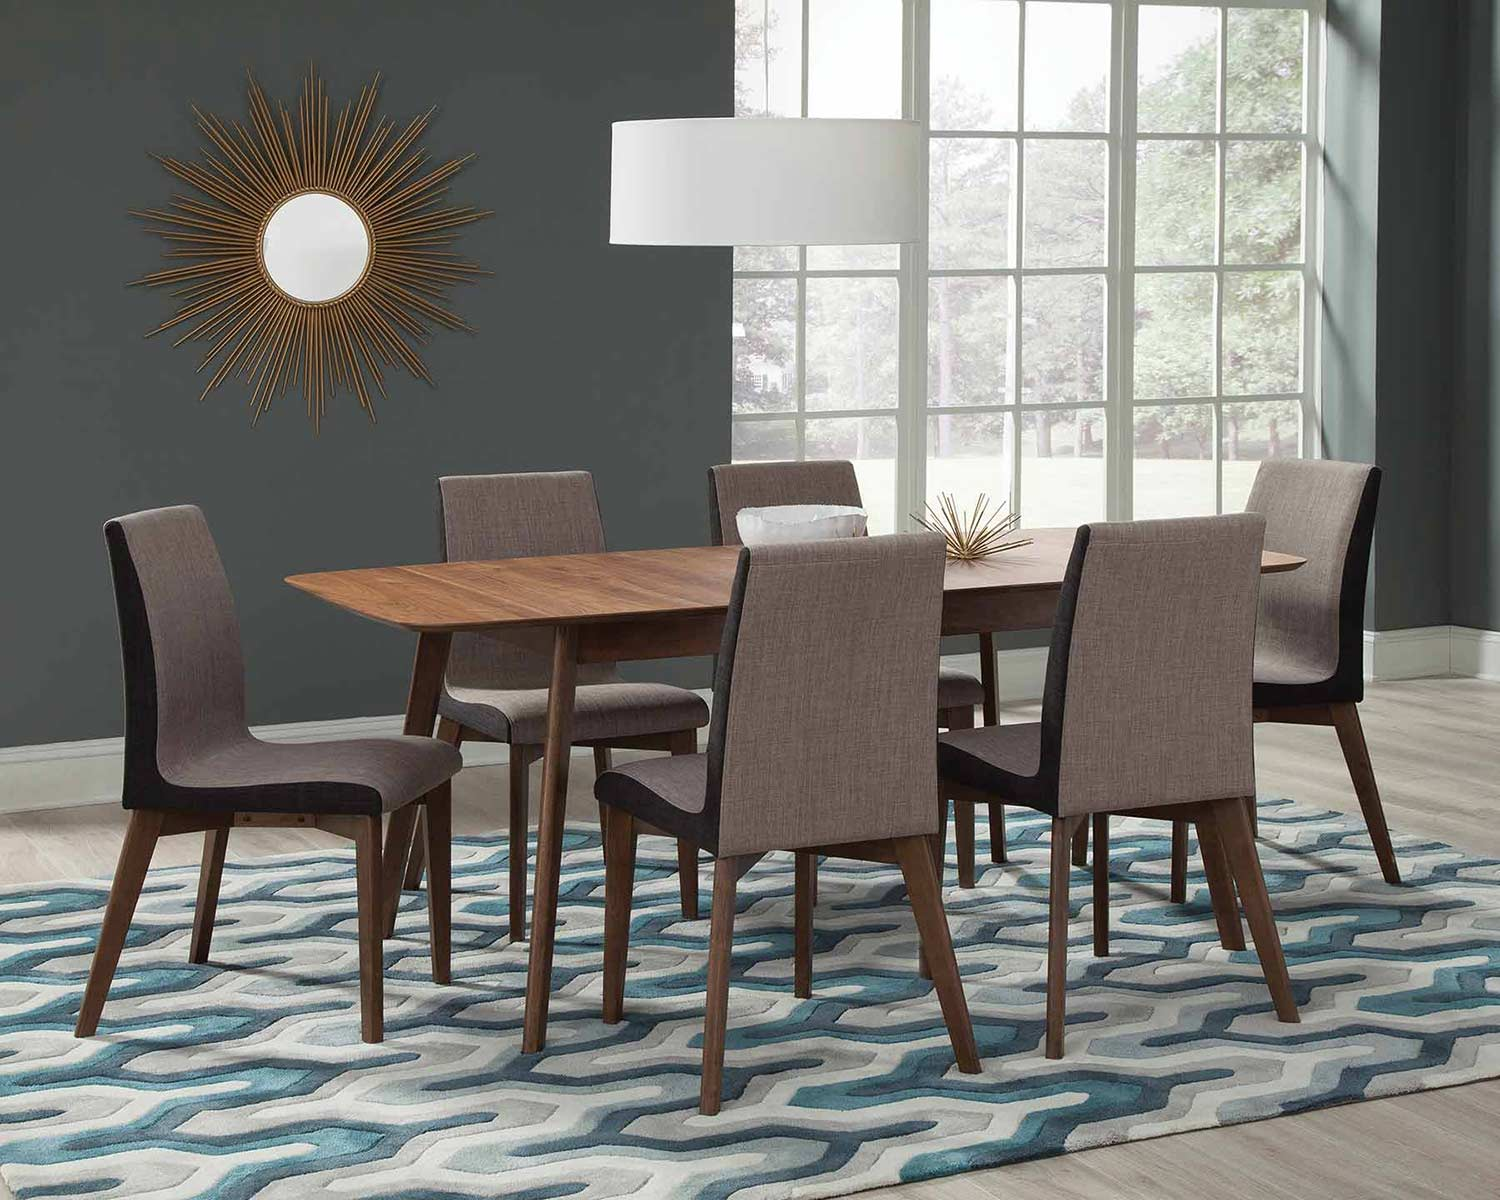 Coaster Redbridge Dining Set - Natural Walnut